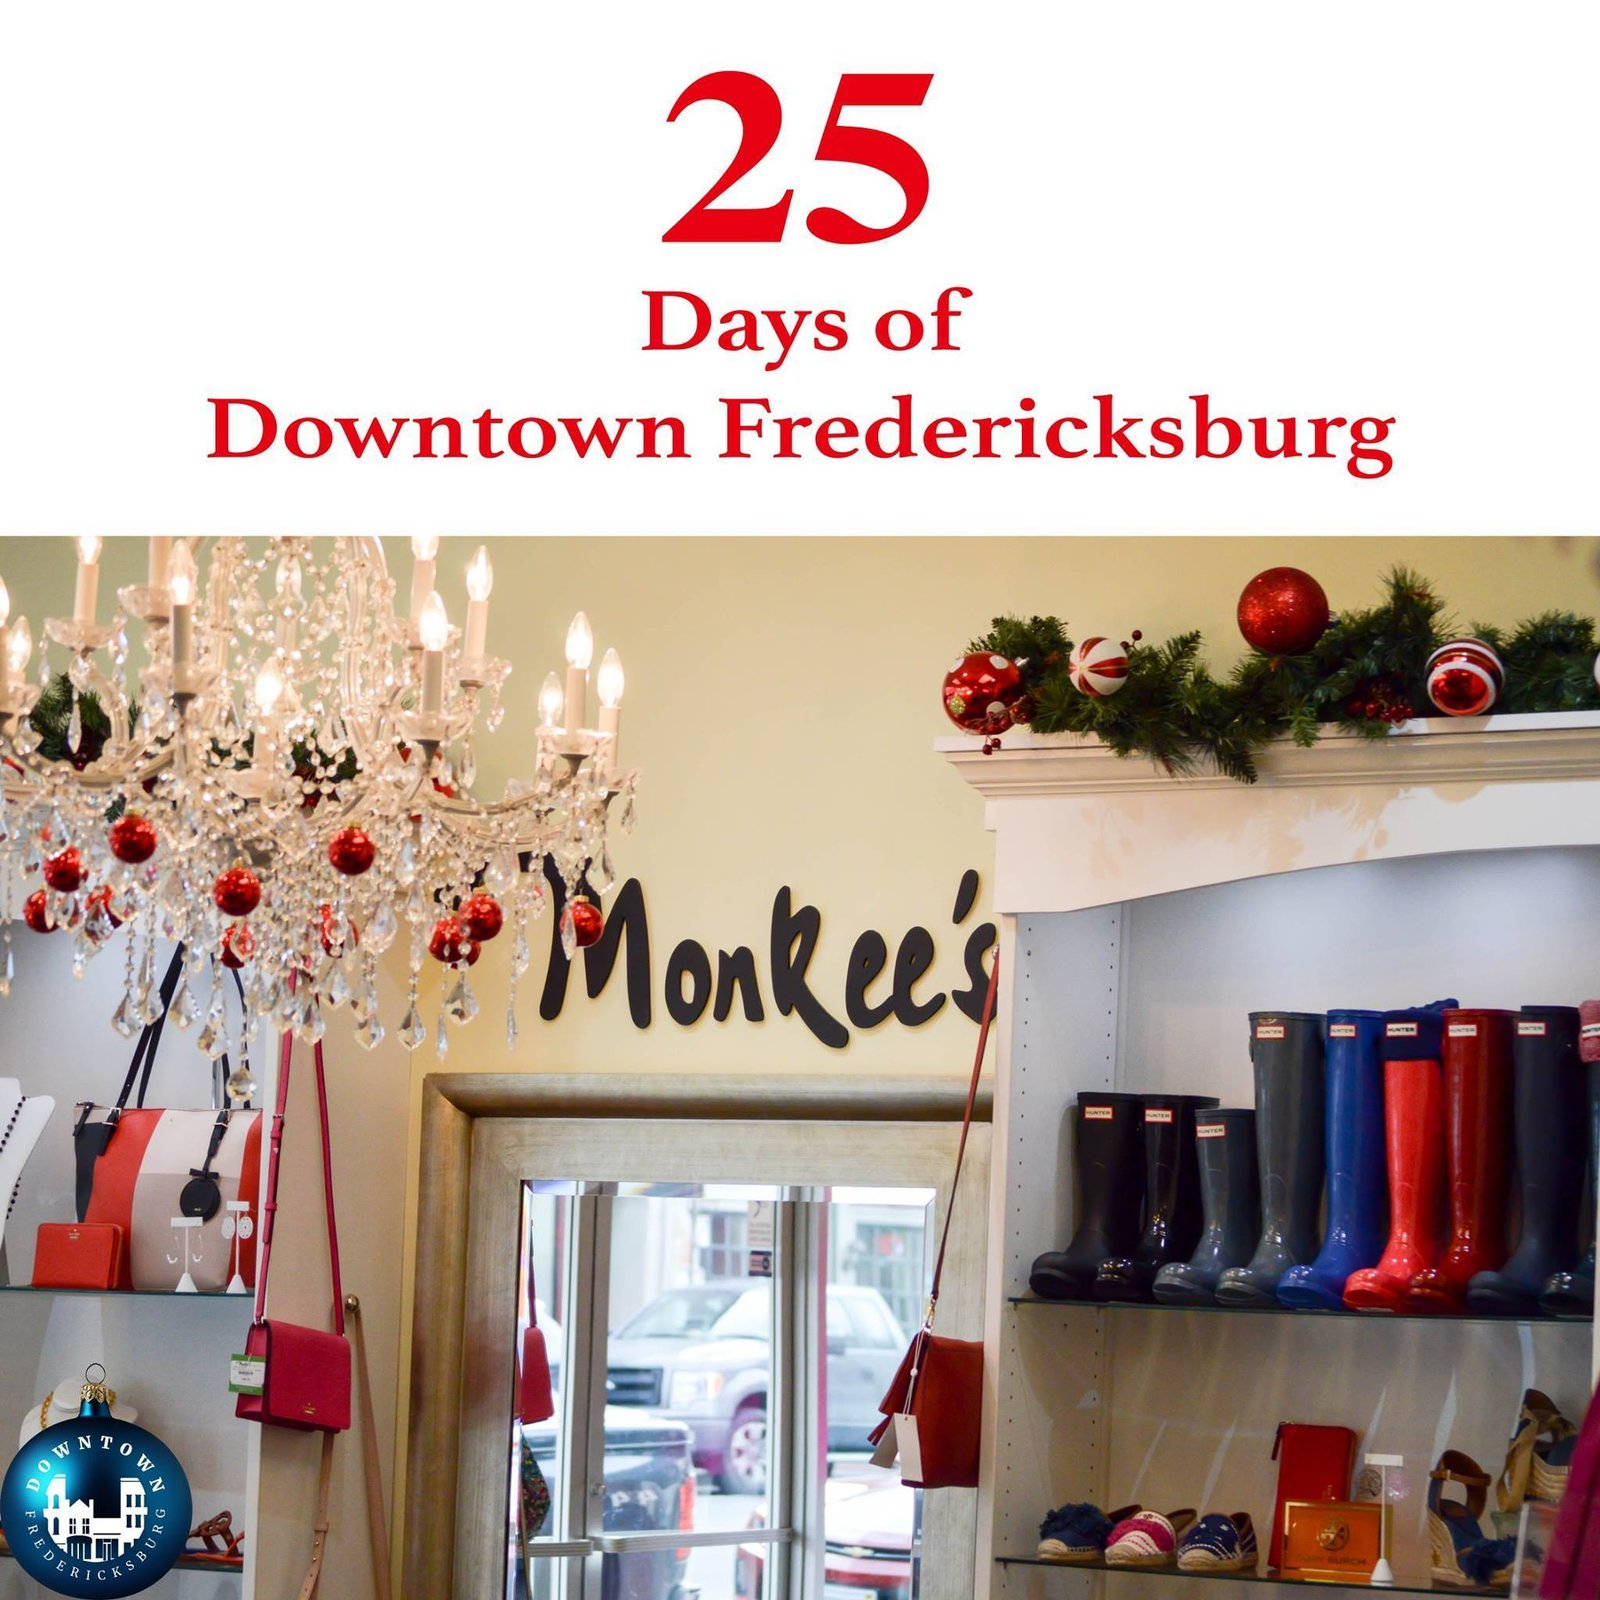 Gift Twenty-four Hunter, Barbour, and Lilly make the season bright! If you are last minute holiday shopping today, Monkee's of Fredericksburg has you covered. https://www.facebook.com/DowntownFredericksburg/  25 Days of Downtown Fredericksburg